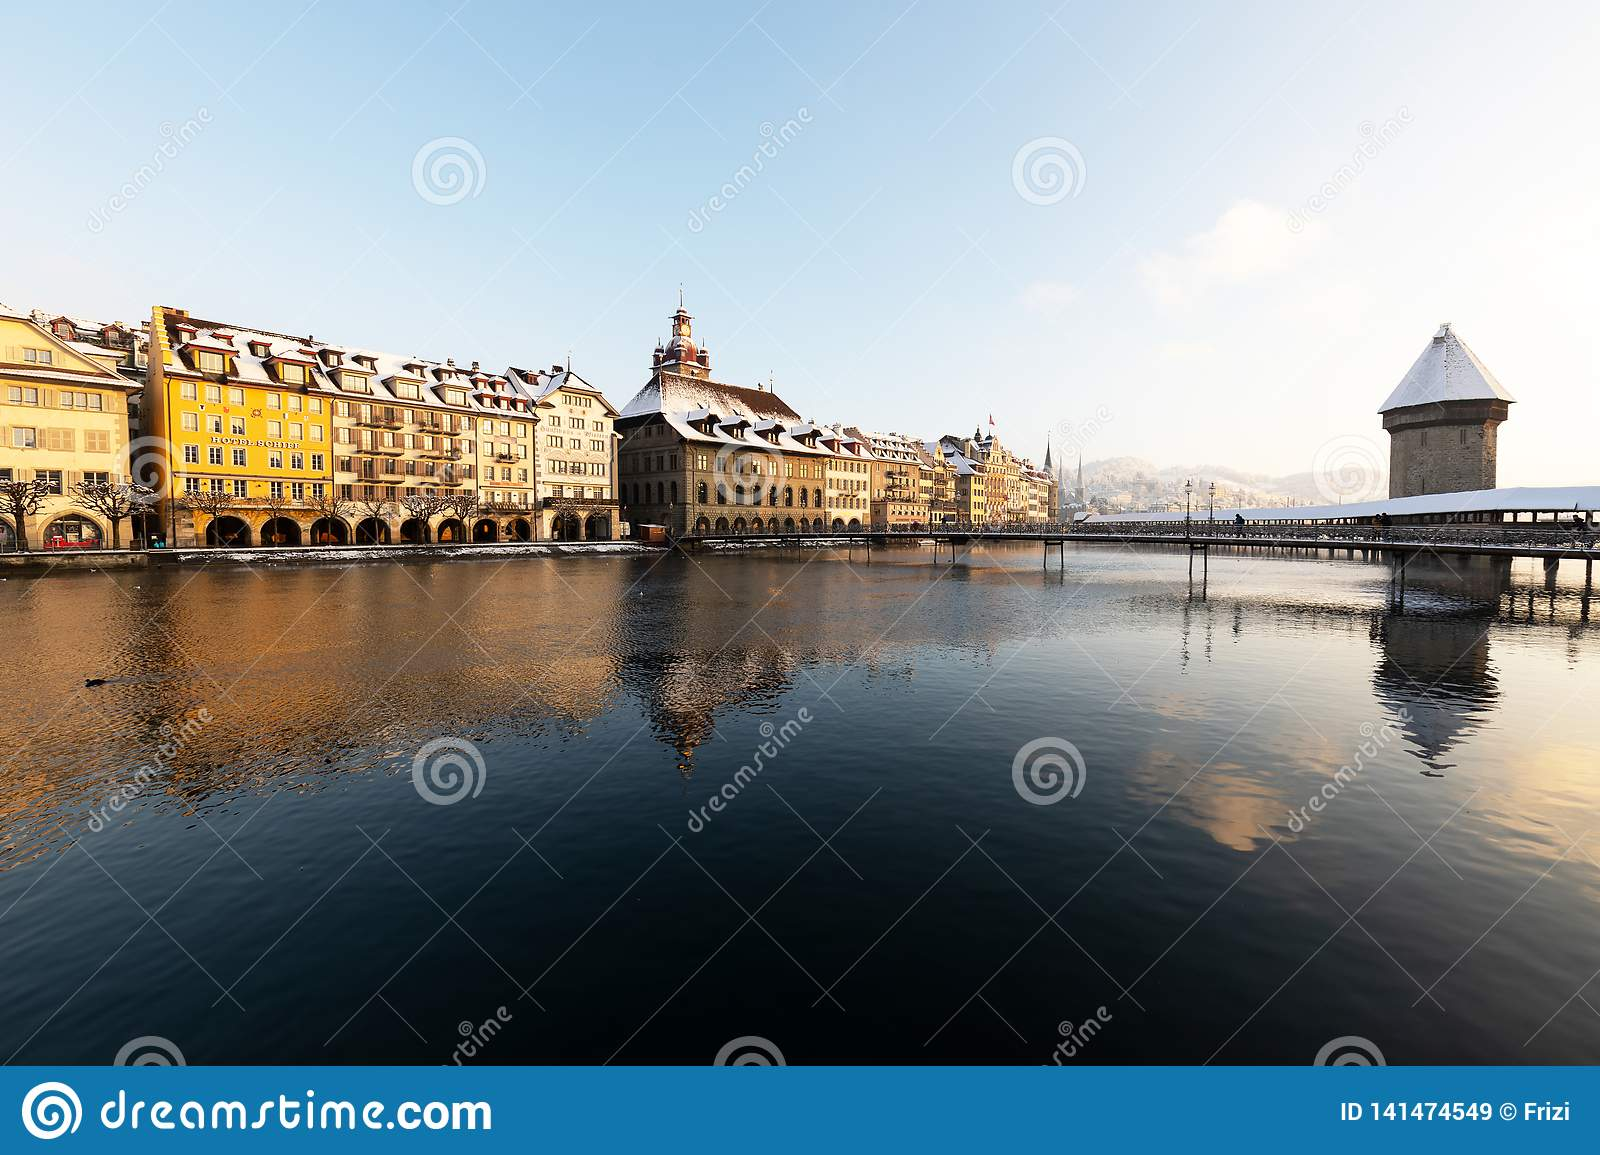 Lucerne Switzerland February 4 2019 Lucerne With Snow Covered